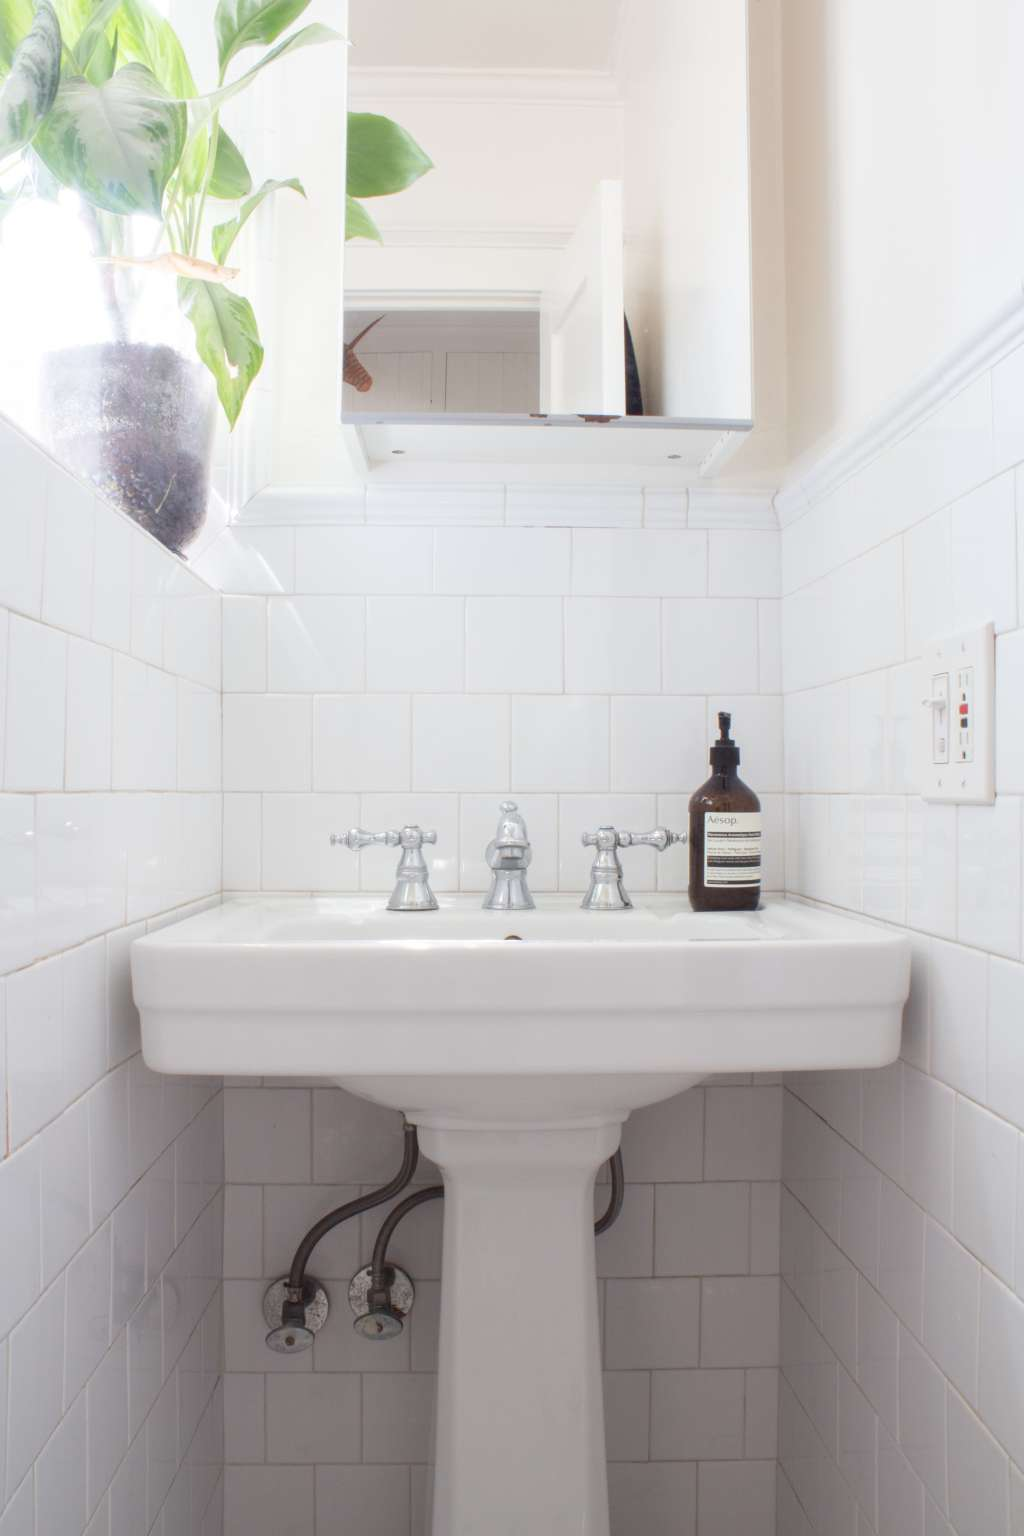 Inexpensive Ideas for Organizing a Small Bathroom